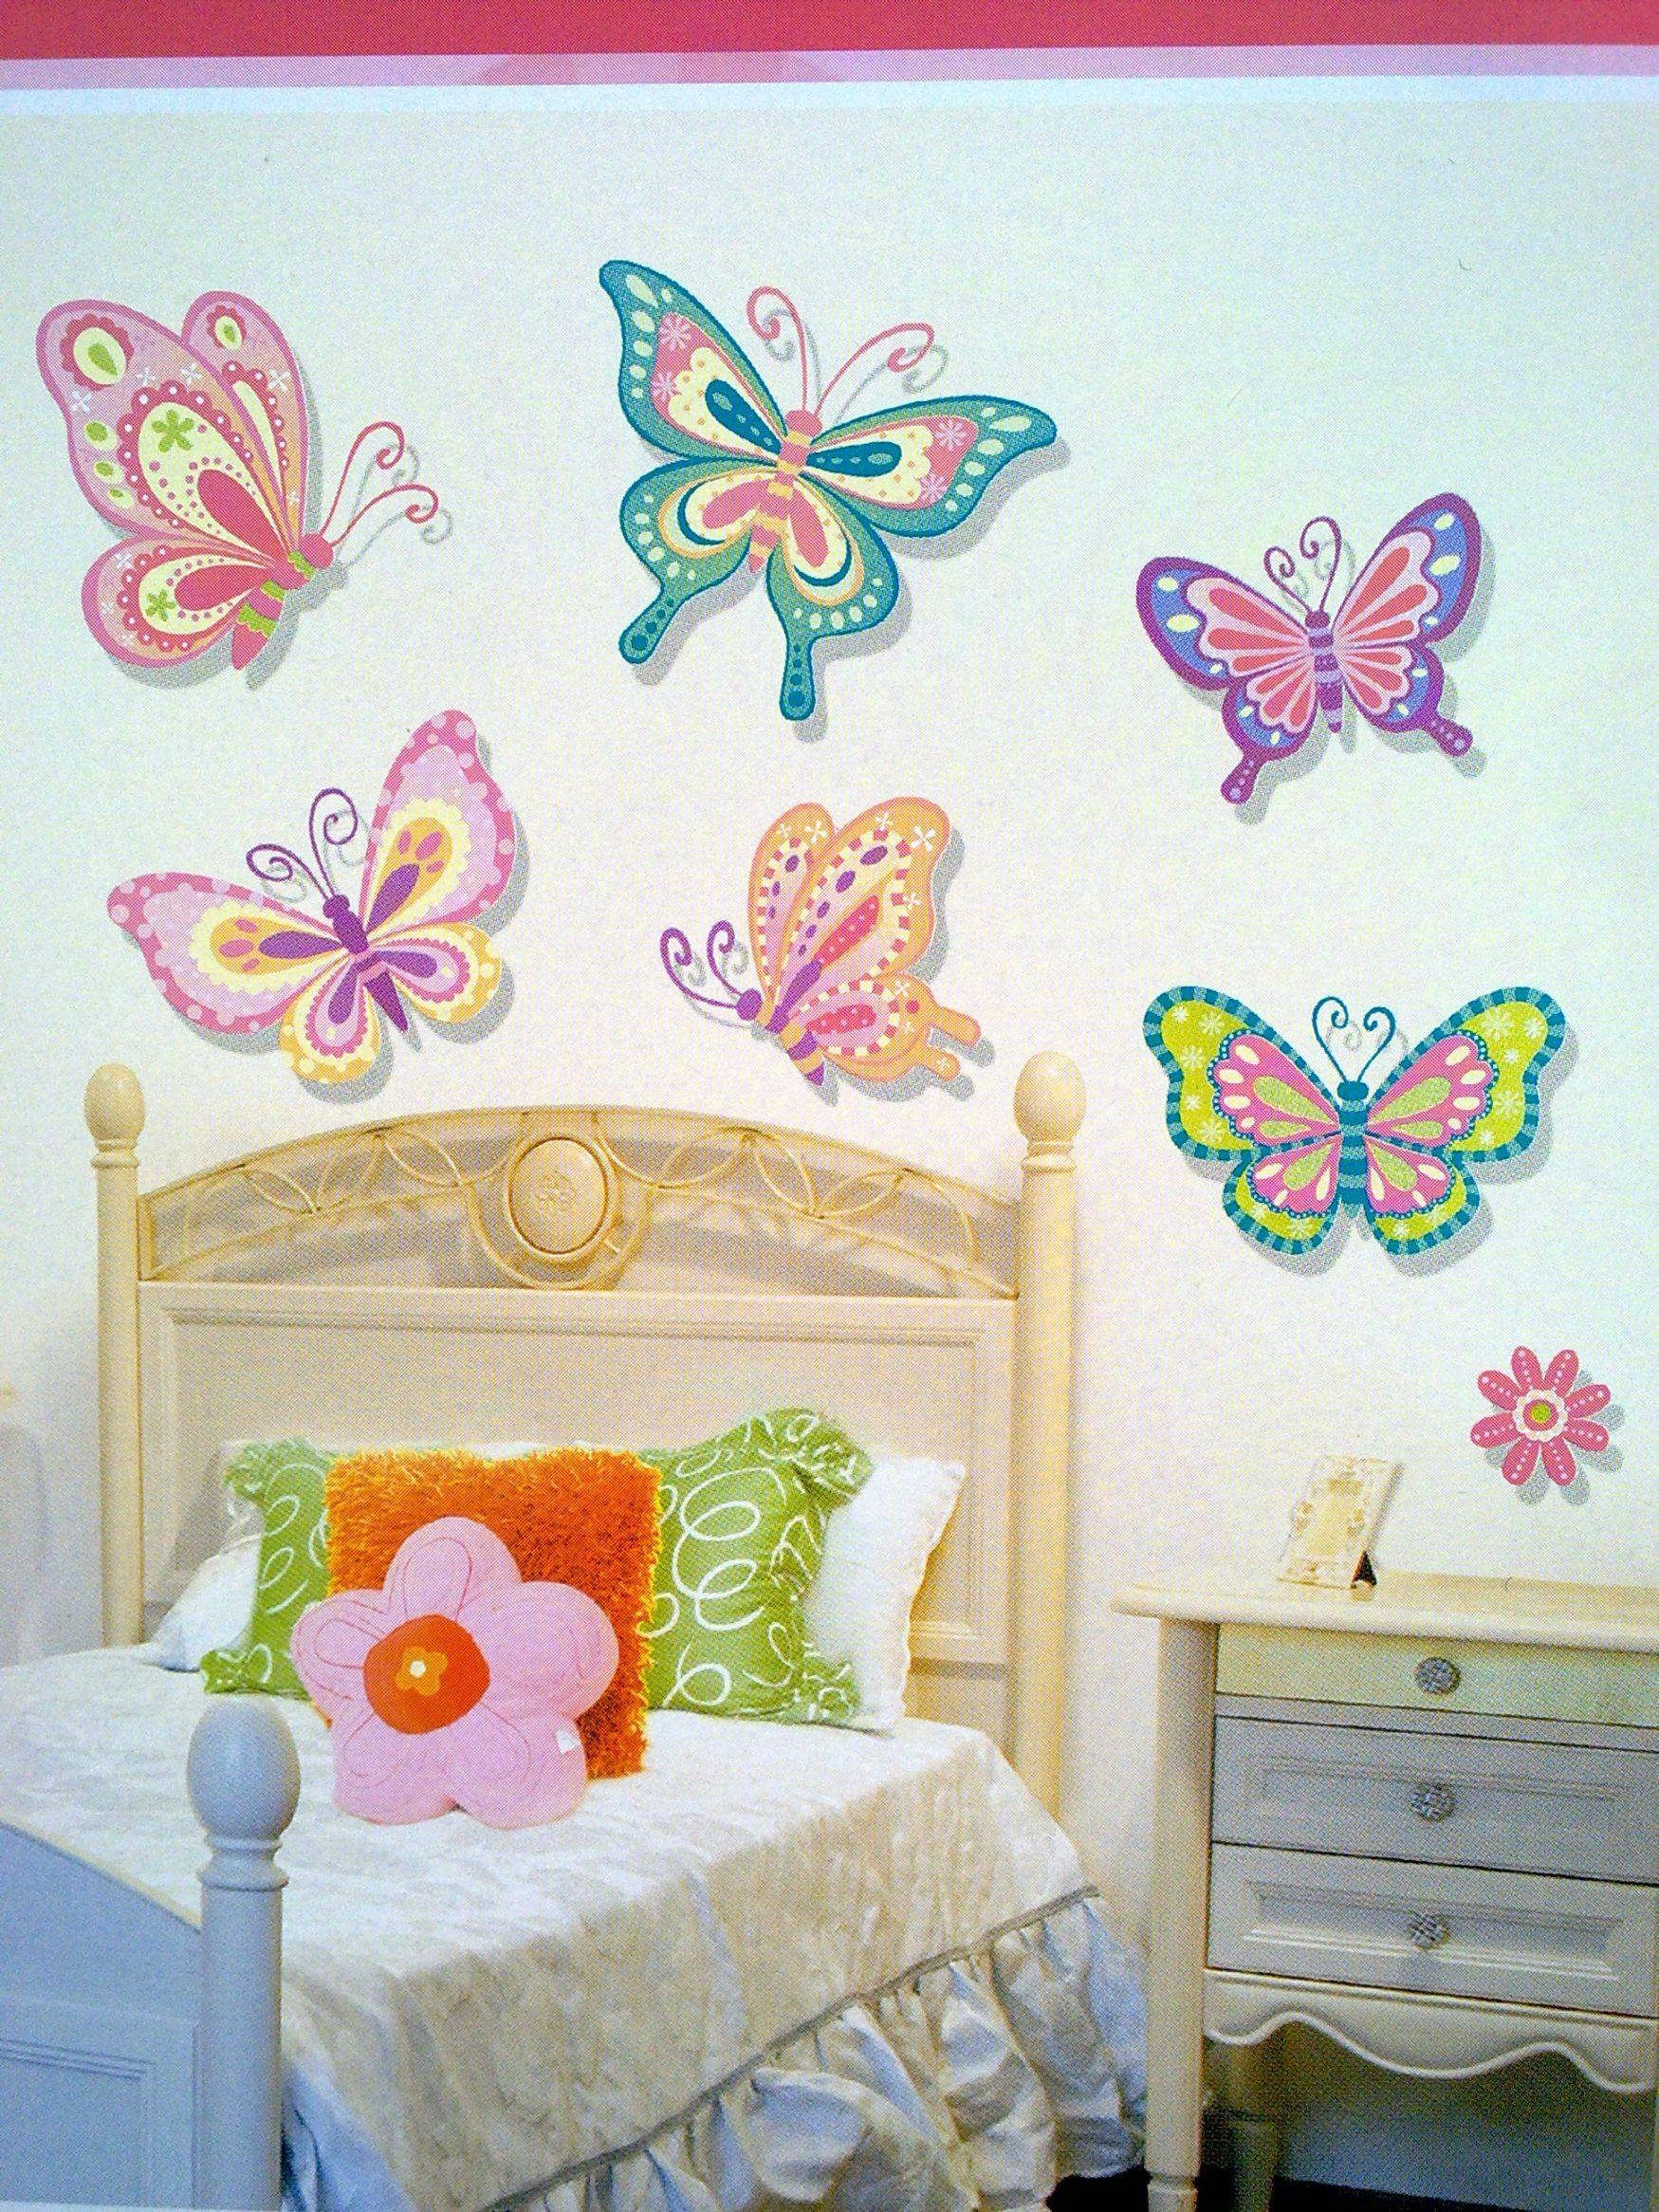 Kids Room. Interior Wall Decoration With Kid Wall Decals For With Regard To Latest 3D Removable Butterfly Wall Art Stickers (Gallery 14 of 20)